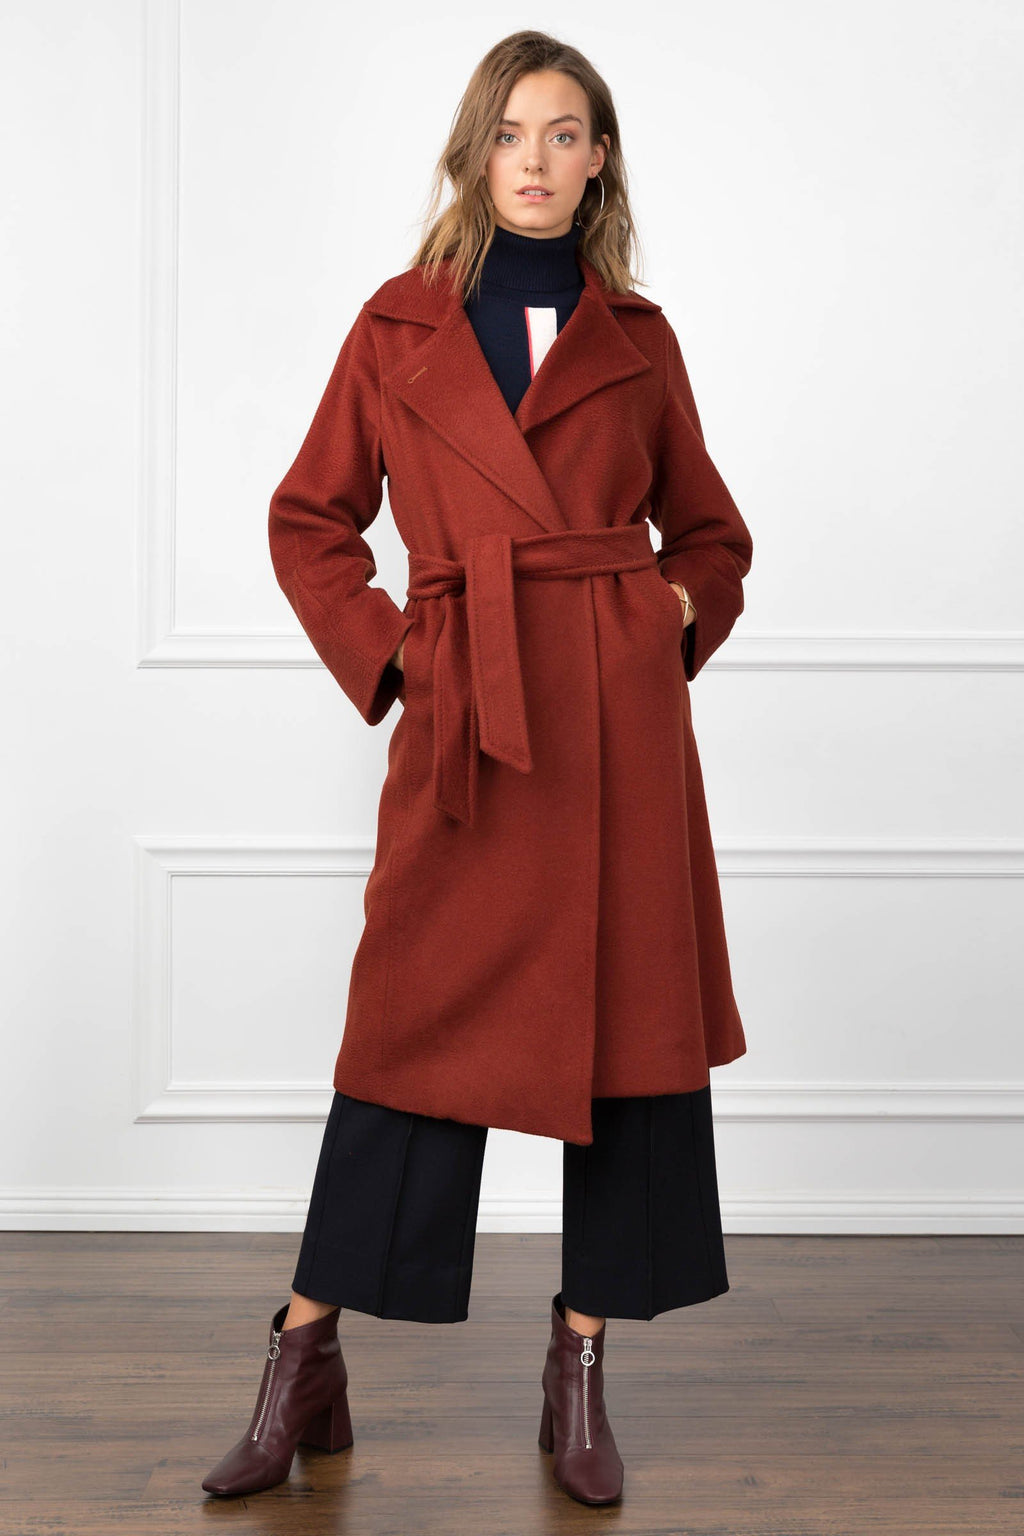 Carey Coat Dark Red in Coats & Jackets by J.ING - an L.A based women's fashion line